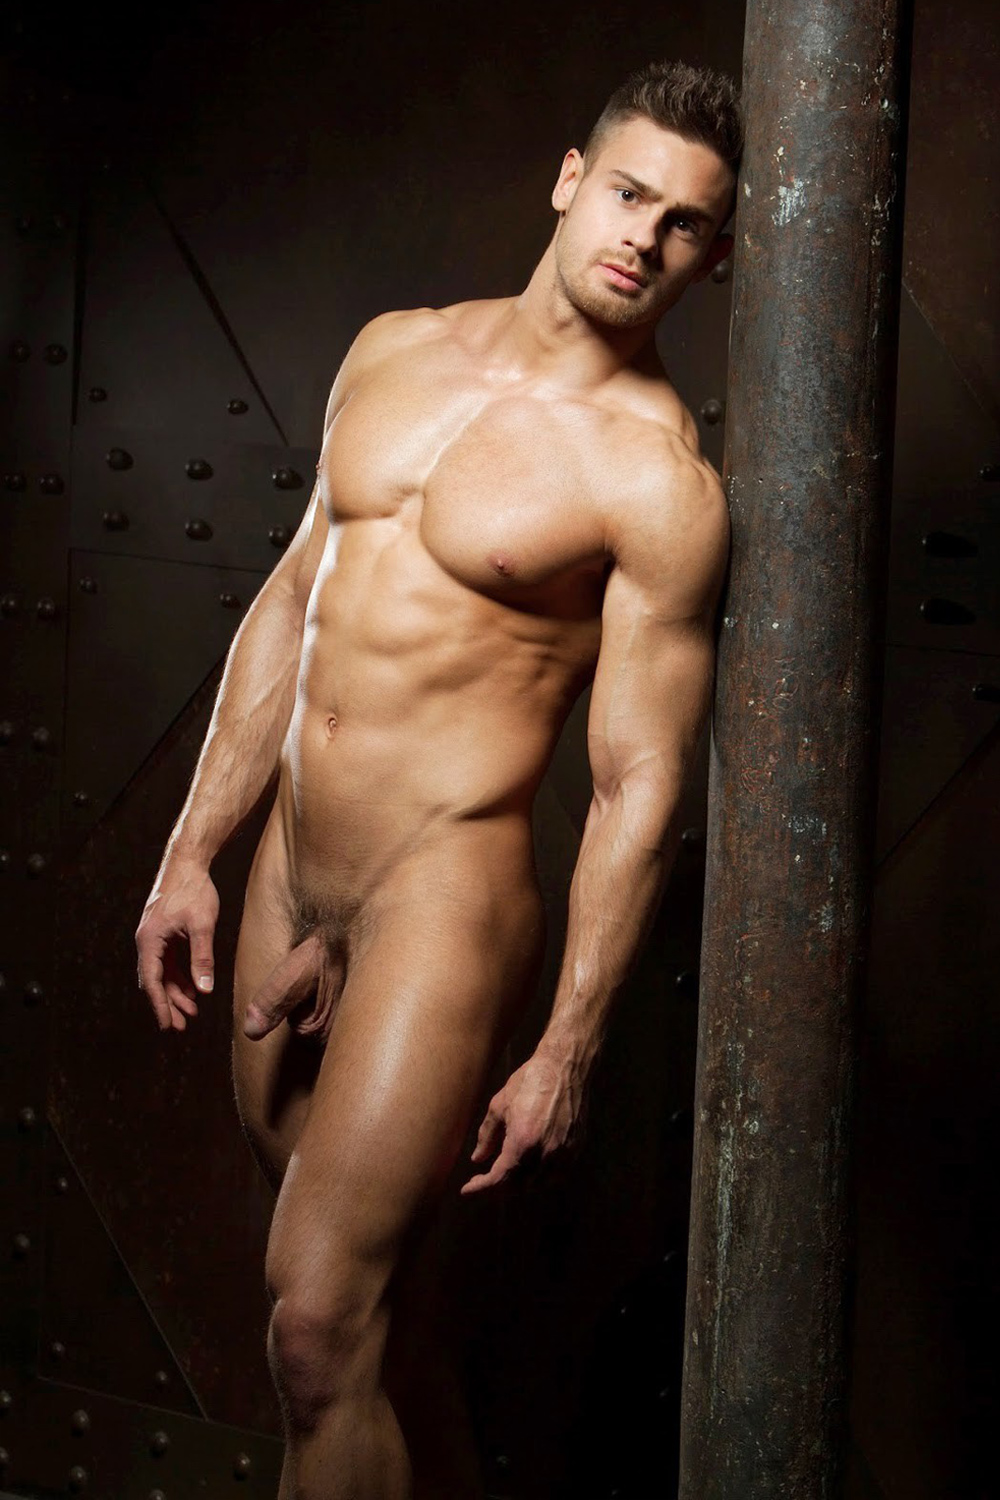 from Jose free pics of hot gay action